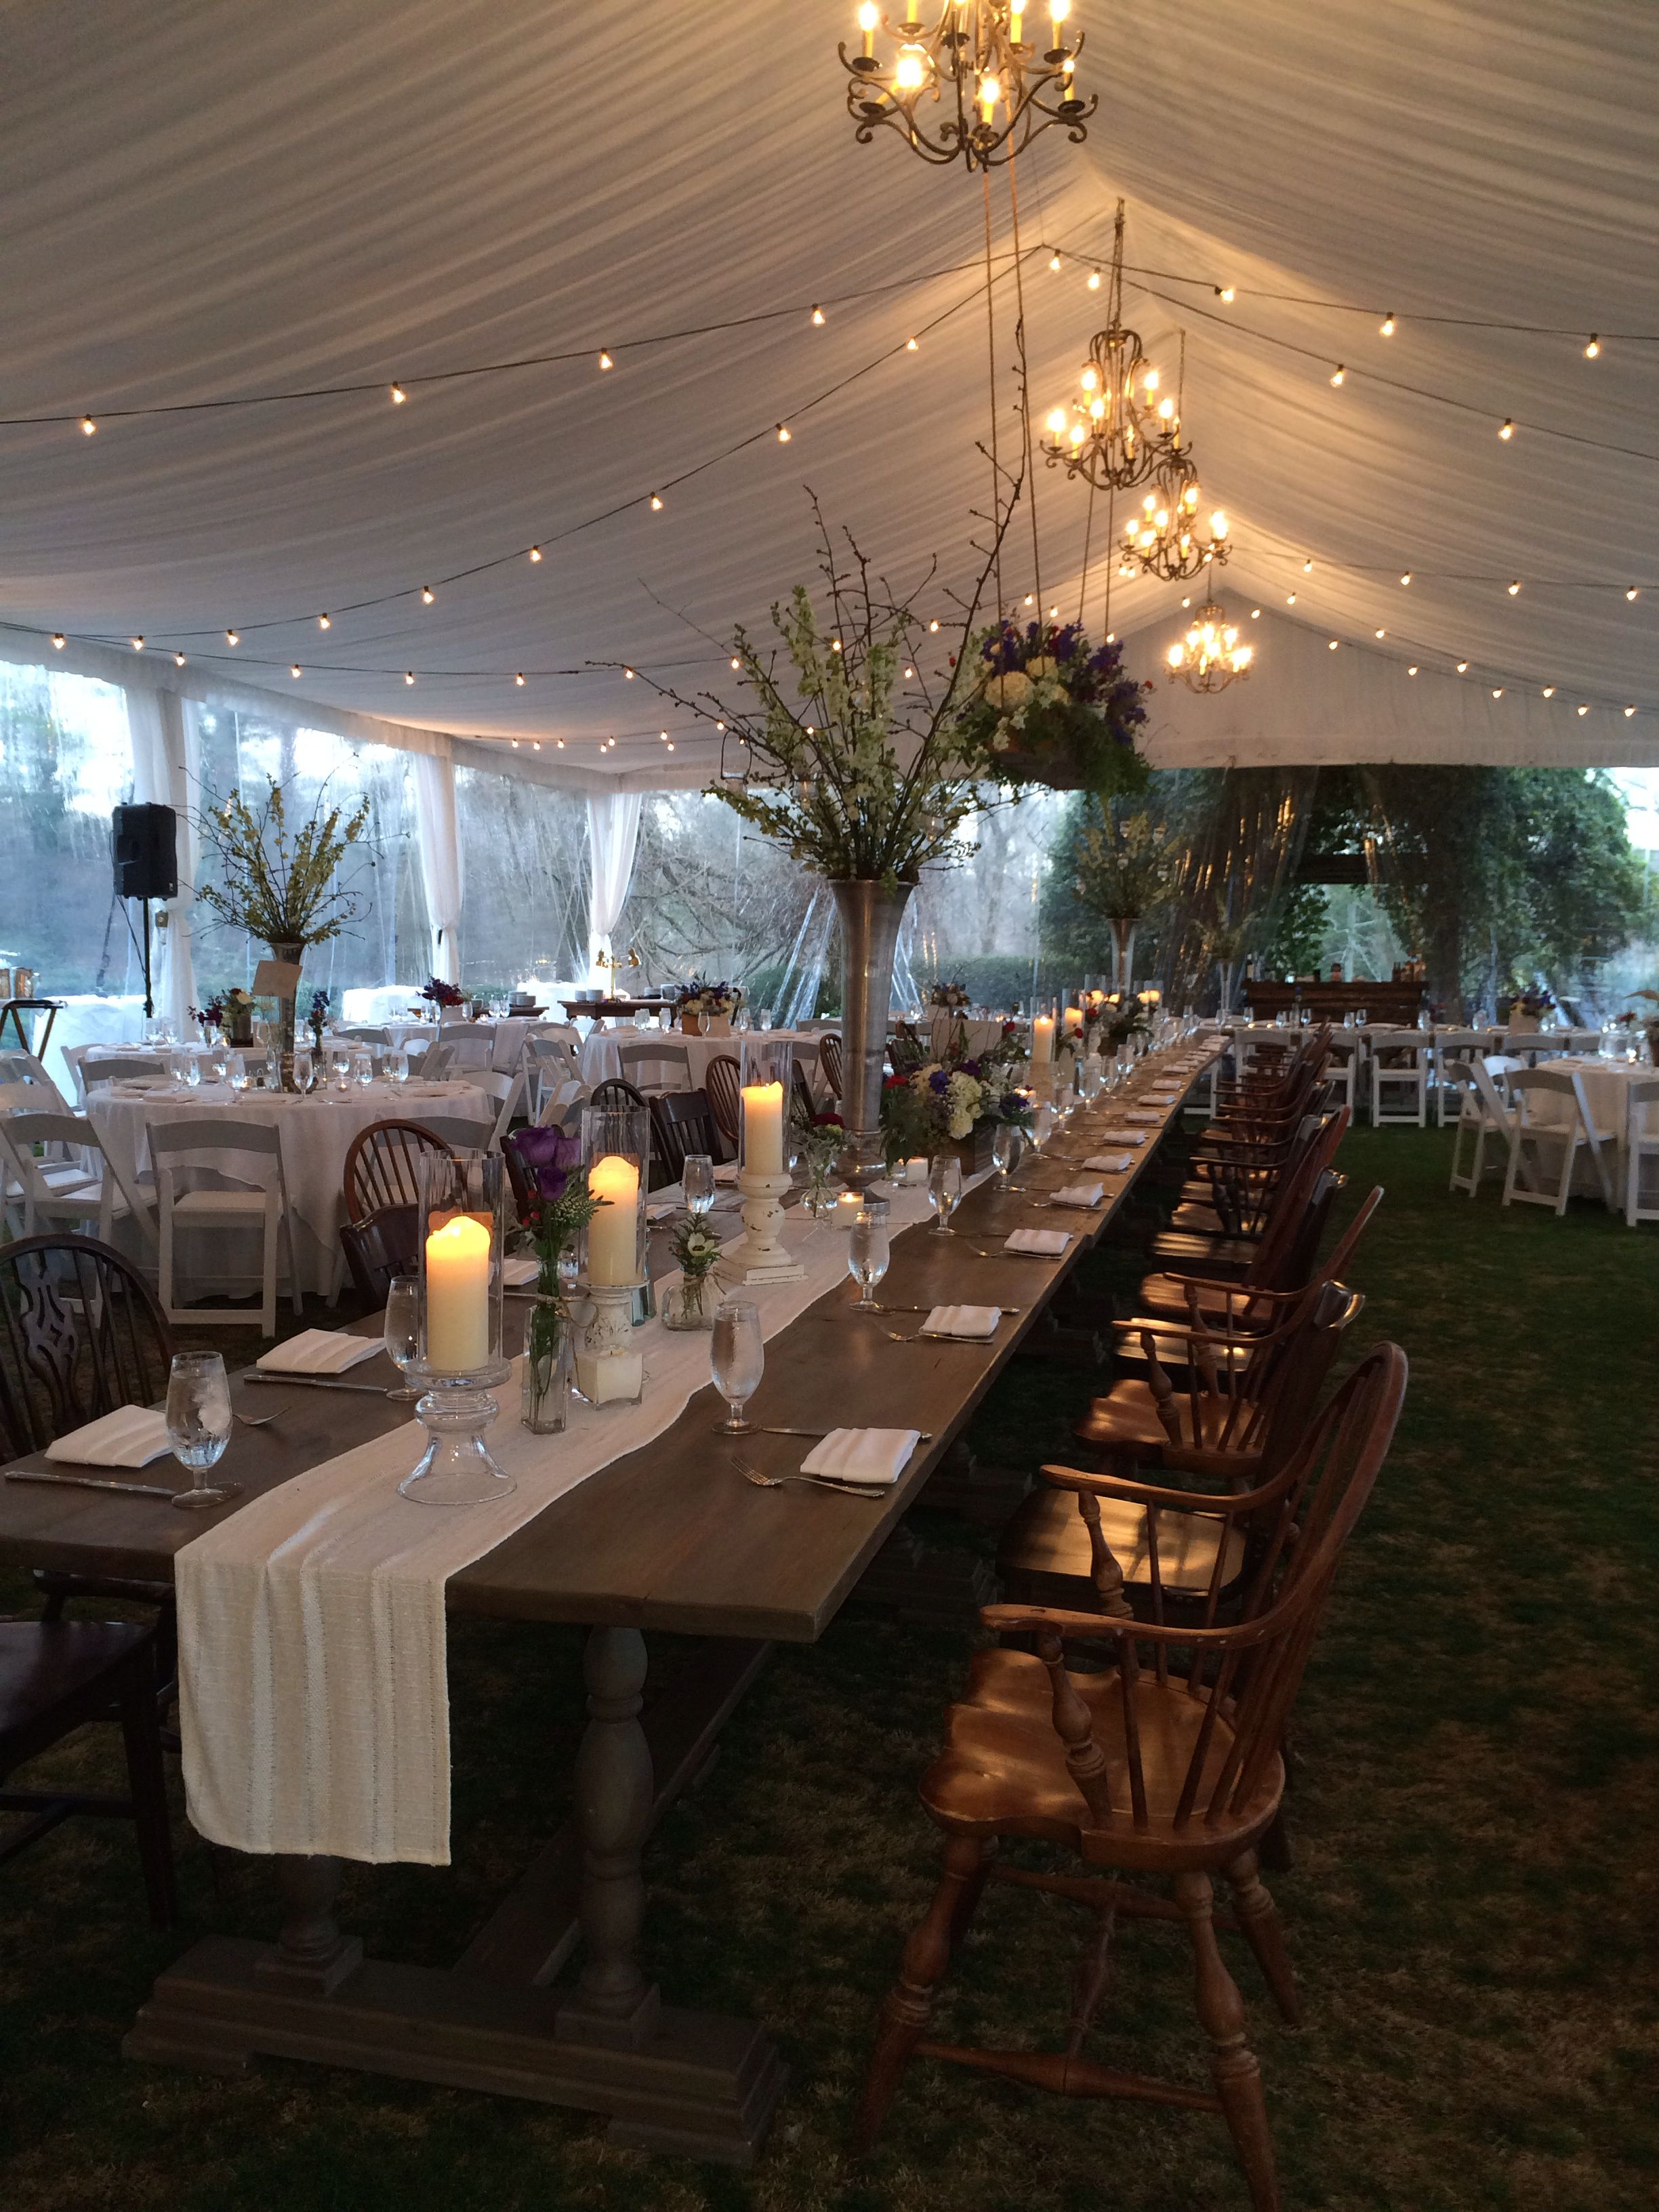 How to Set Up a Head Table | Our Everyday Life  |Outdoor Wedding Reception Head Table